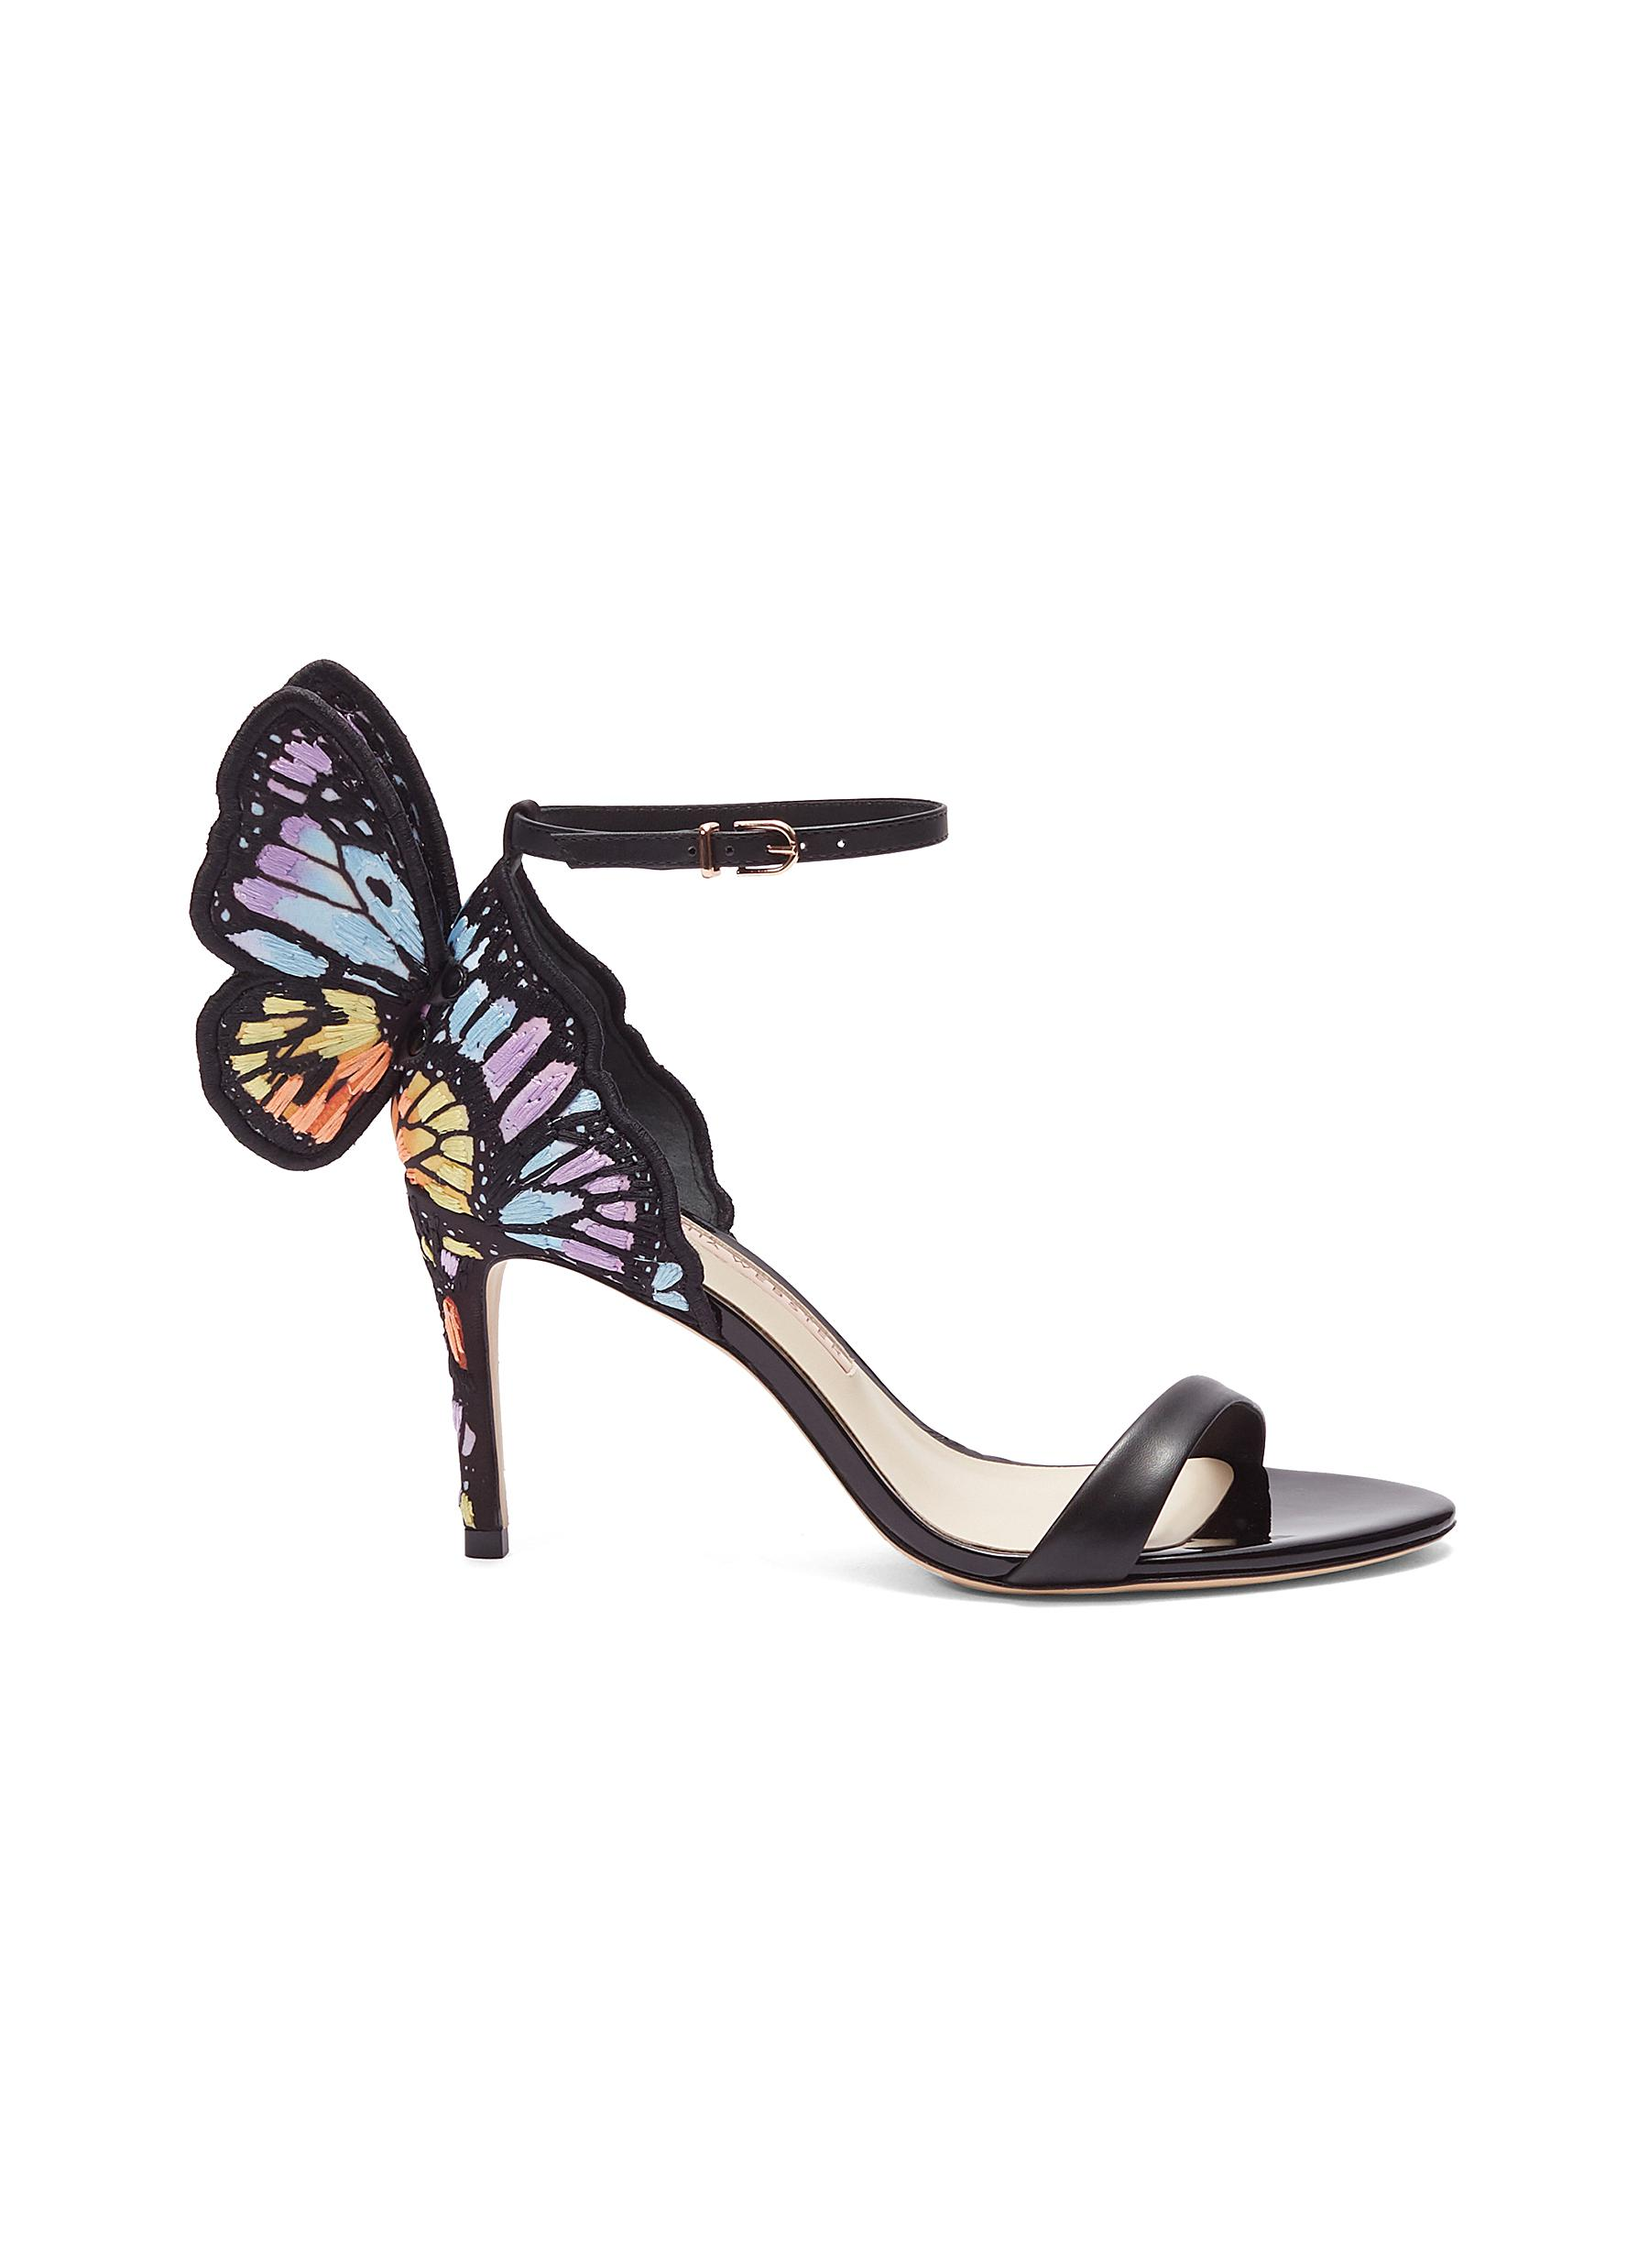 Chiara embroidered butterfly appliqué leather sandals by Sophia Webster